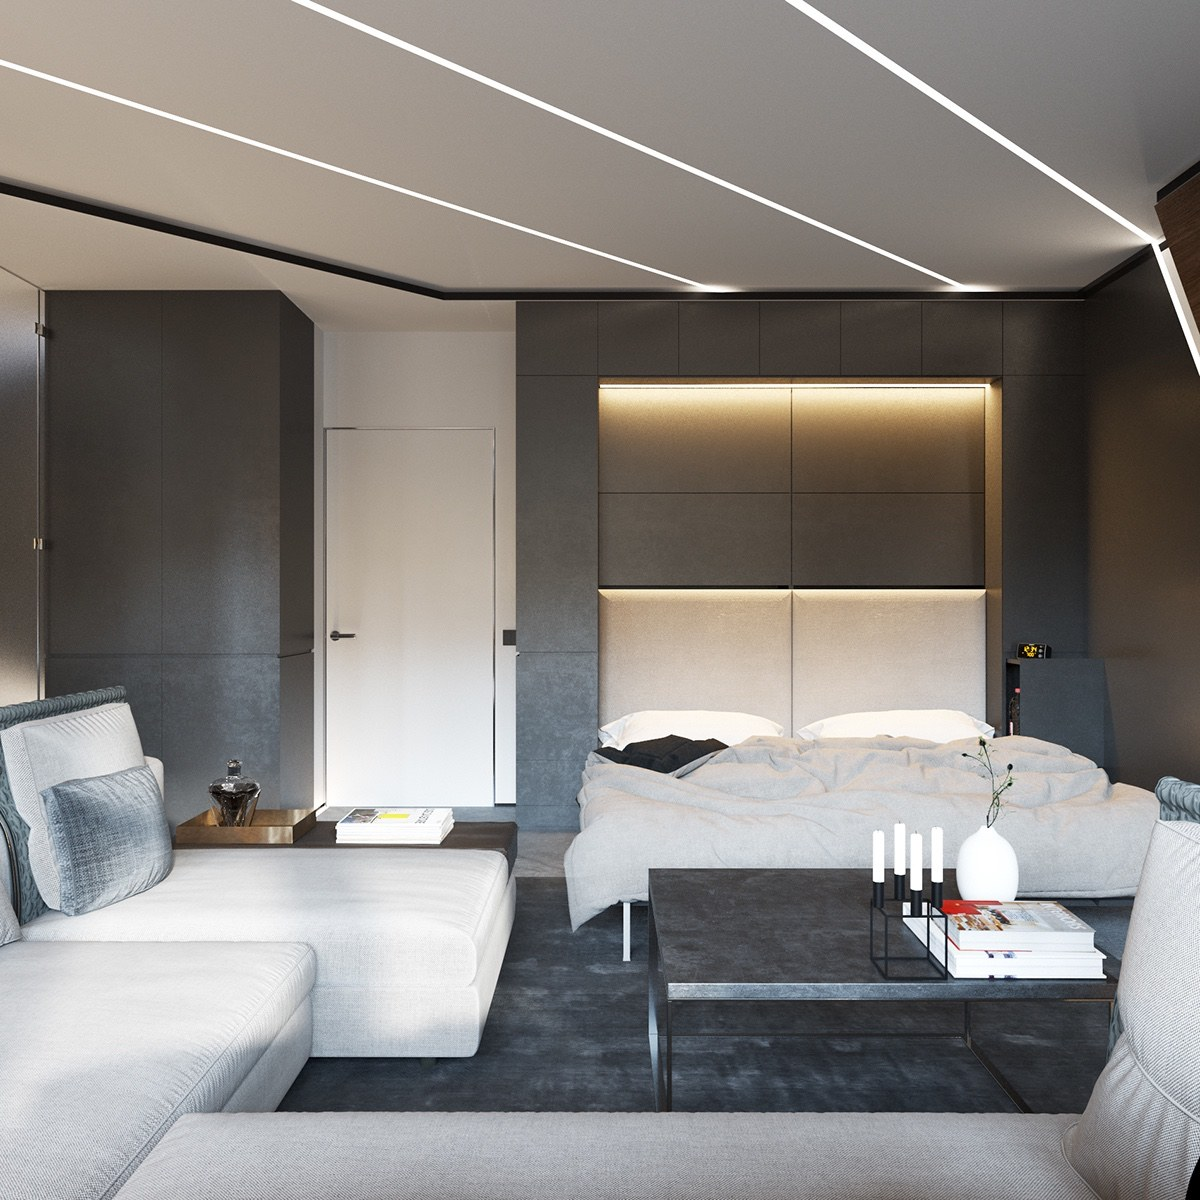 3 open layout apartments that use clever space saving techniques amipublicfo Images